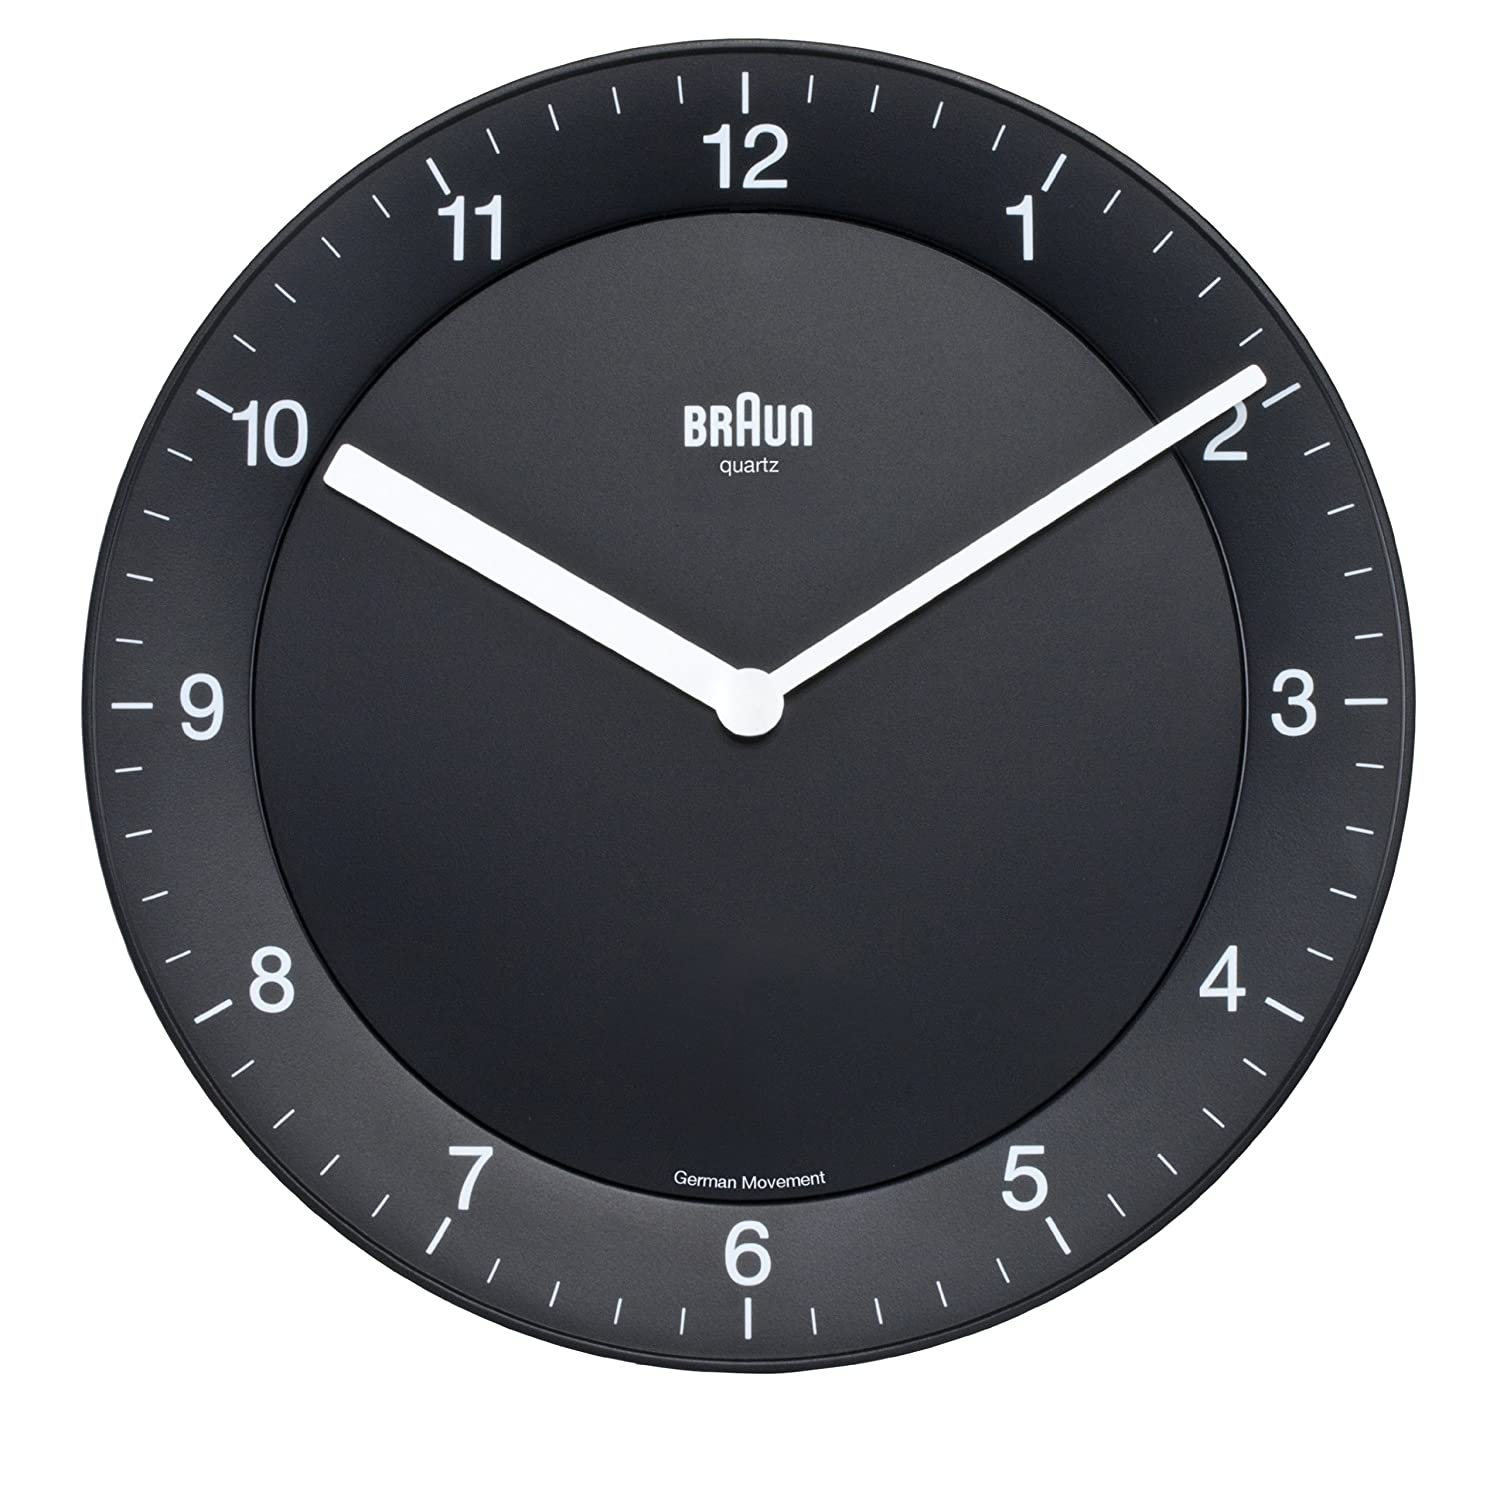 Original wall clock with your hands for half an hour